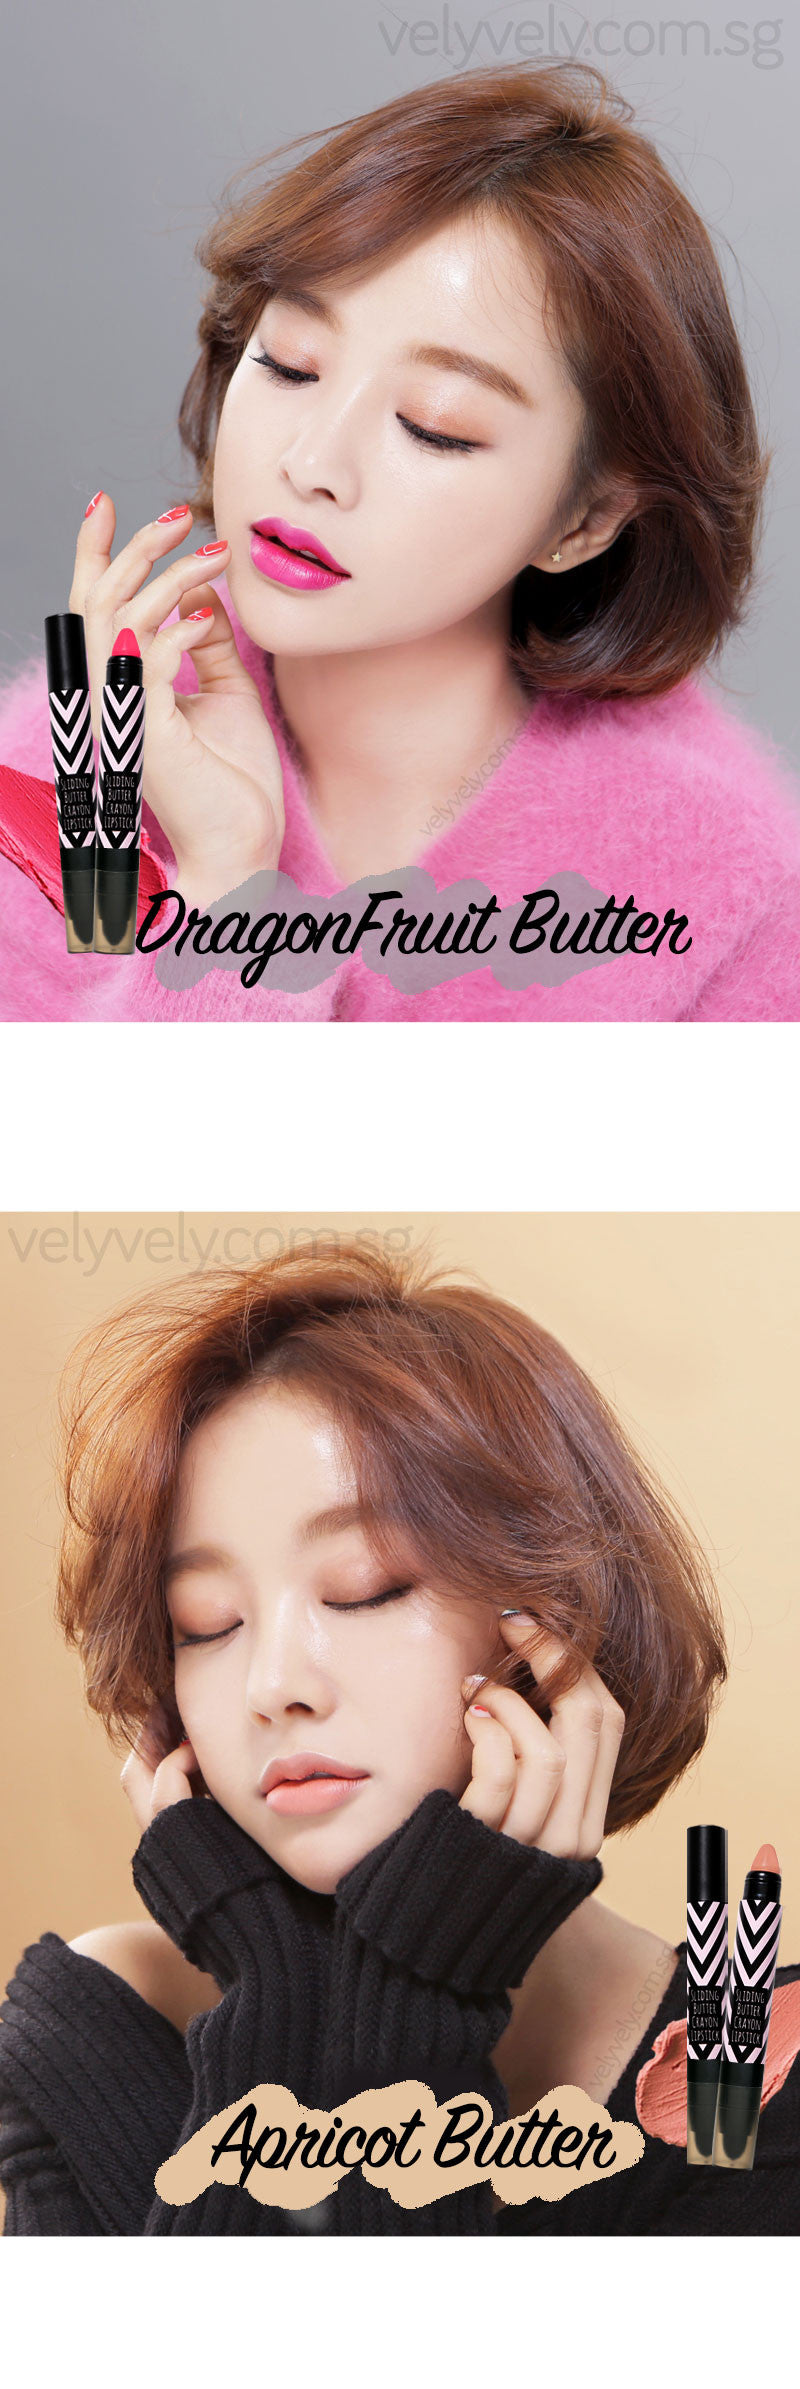 Korea's Cosmetic Brand, Vely Vely Sliding Butter Crayon in Dragon Fruit Butter and Apricot Butter!